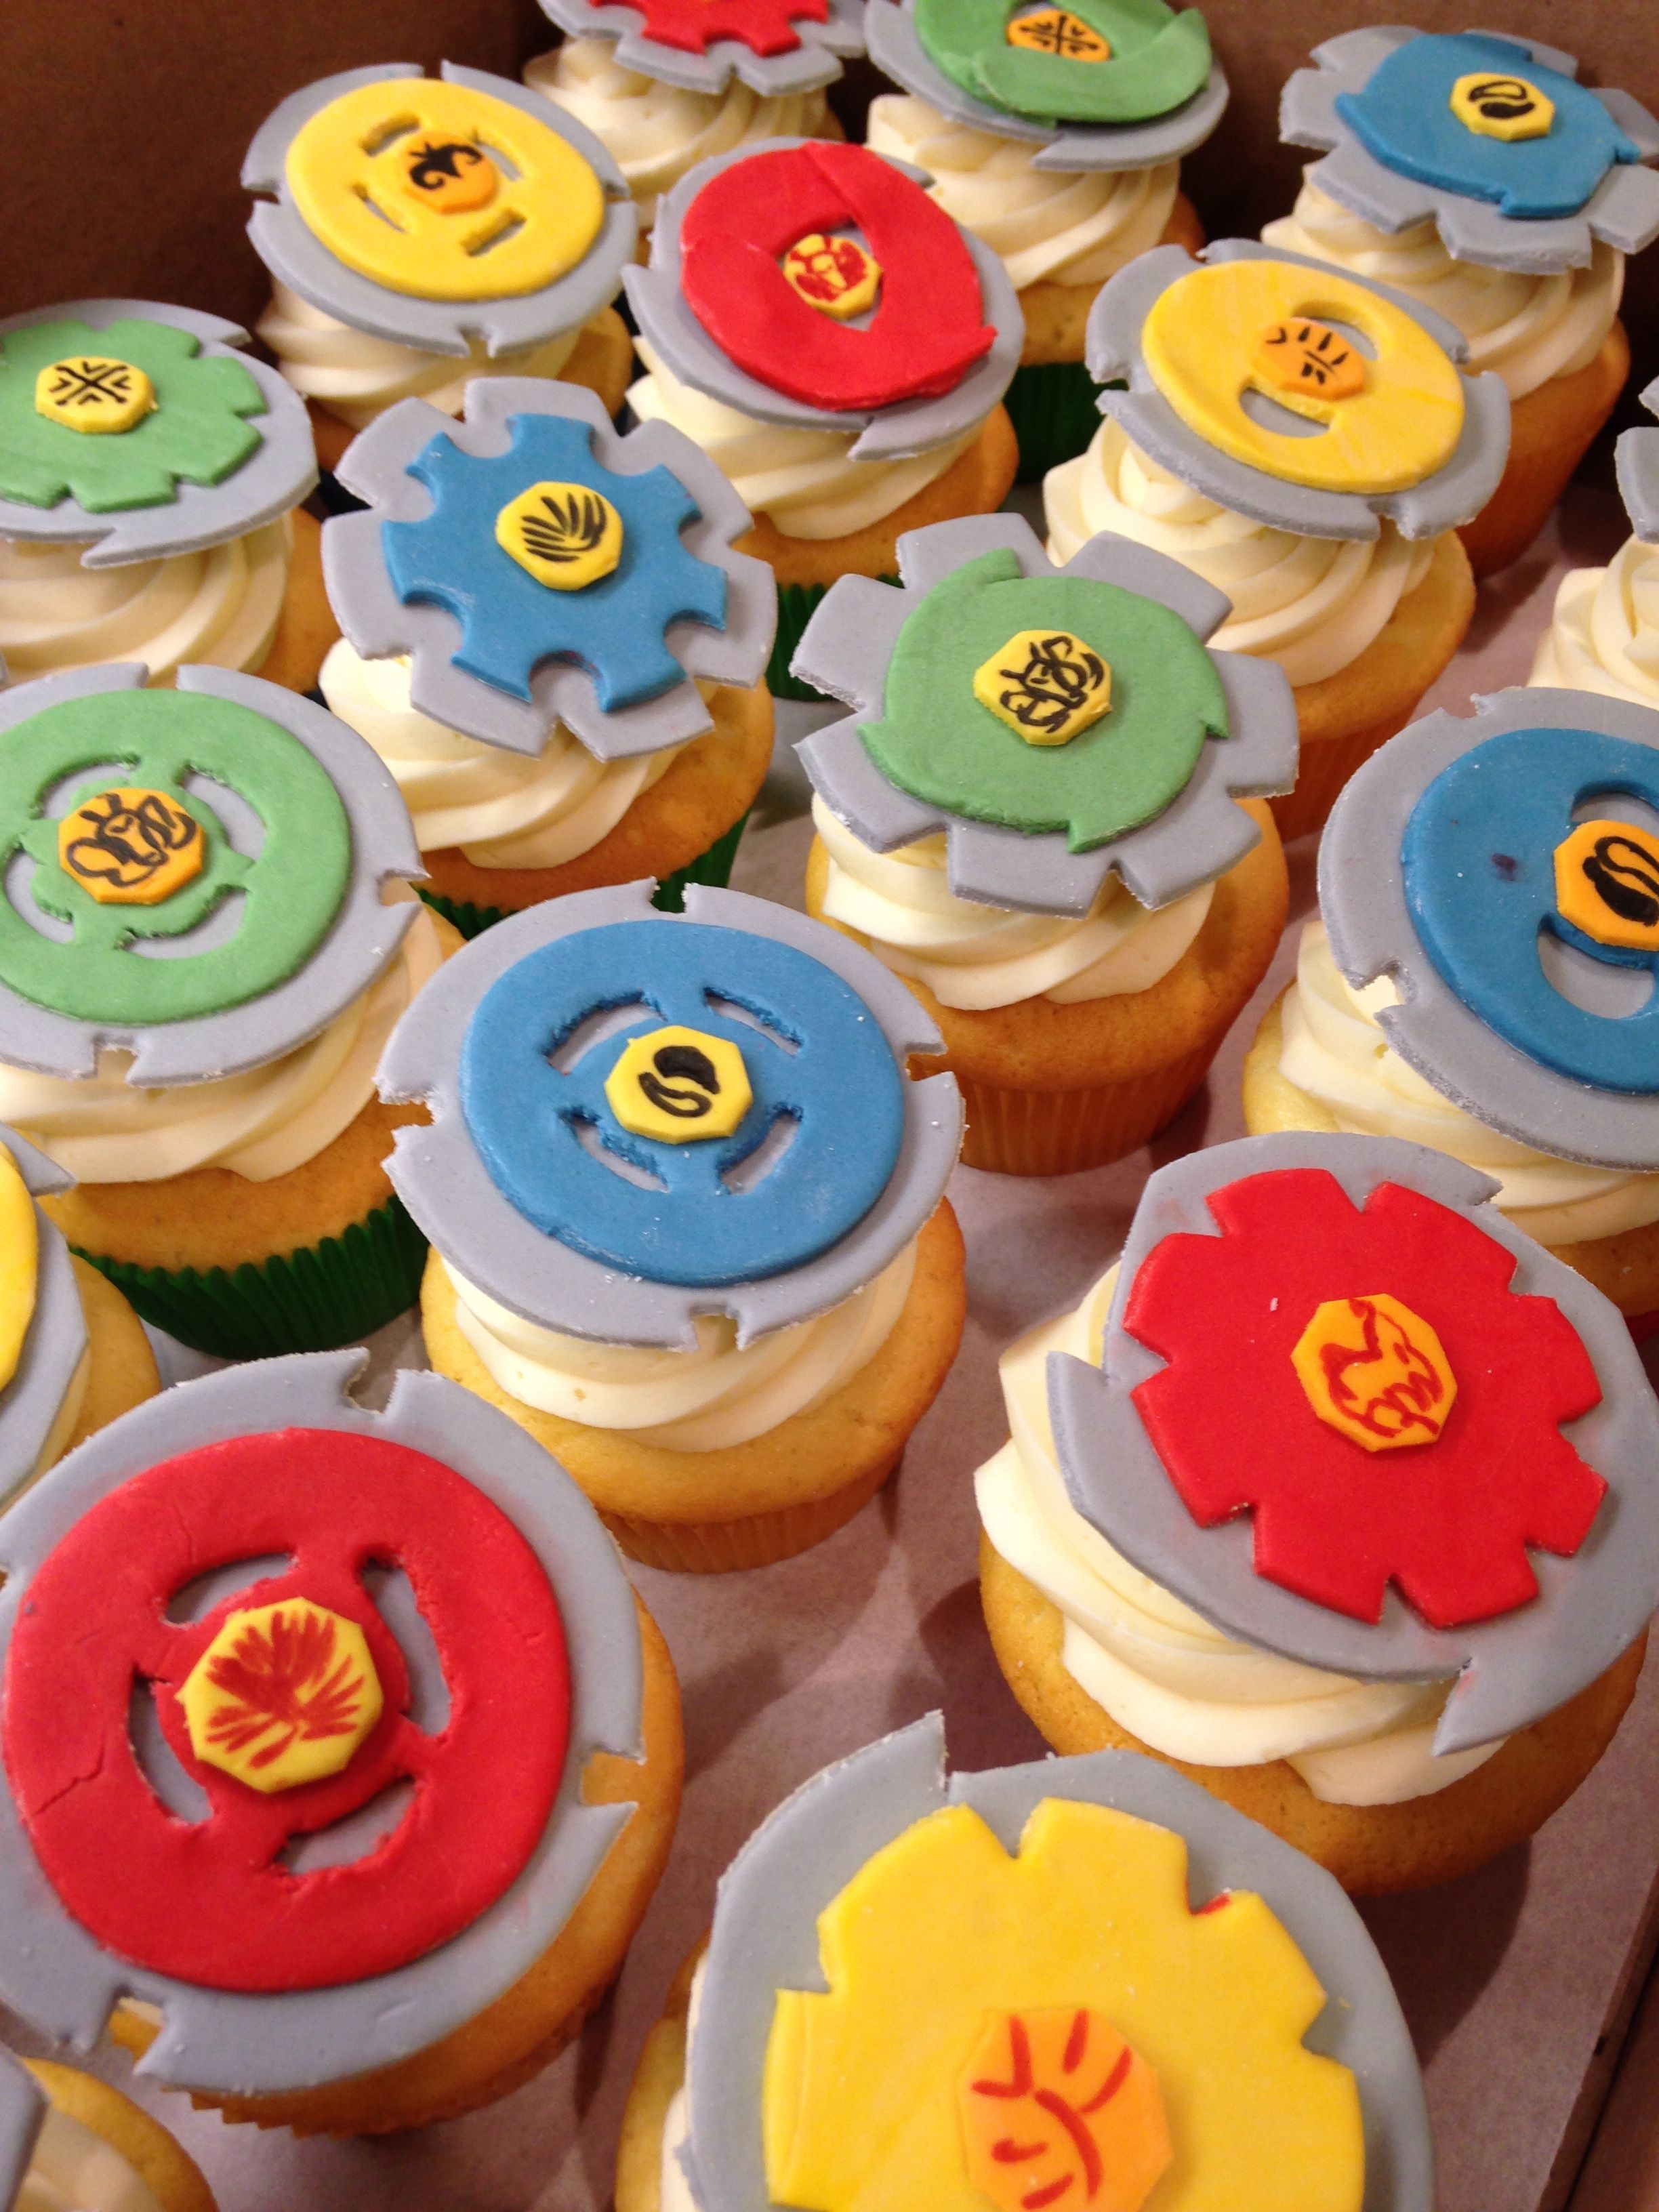 Beyblade cupcakes cupcakes pinterest birthdays cake for Anime beyblade cake topper decoration set